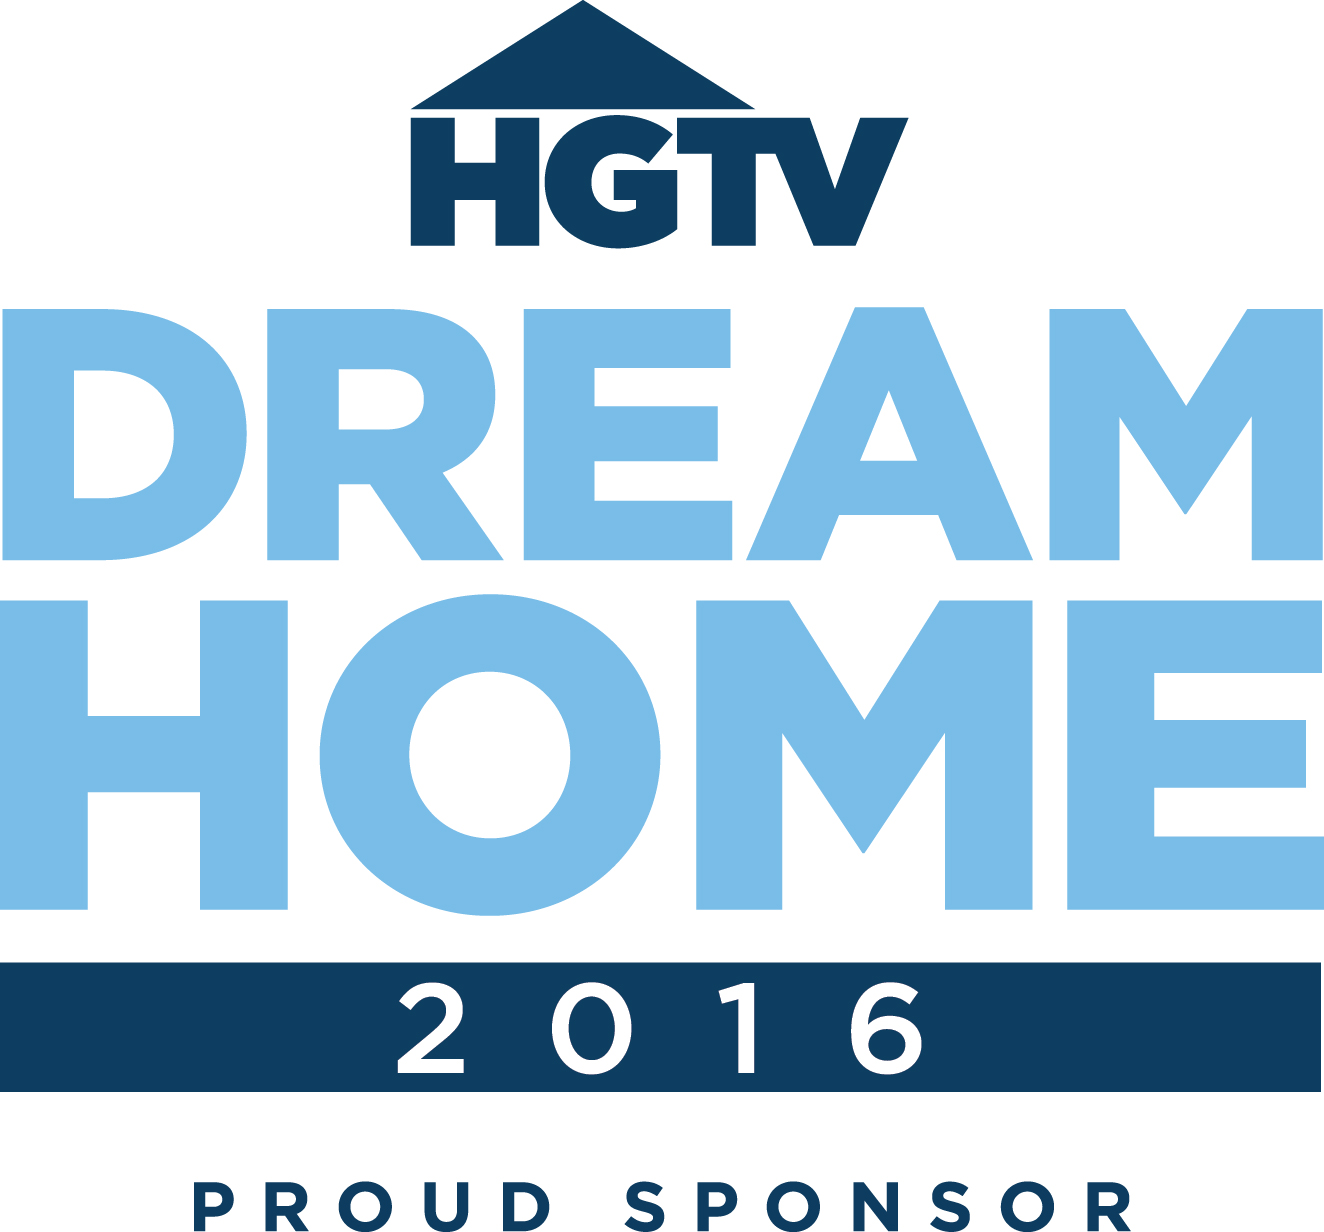 Hgtv Front Door Logo -  brand offered interior designer brian patrick flynn the inspiration needed to develop a coastal inspired color palette for the hgtv dream home 2016